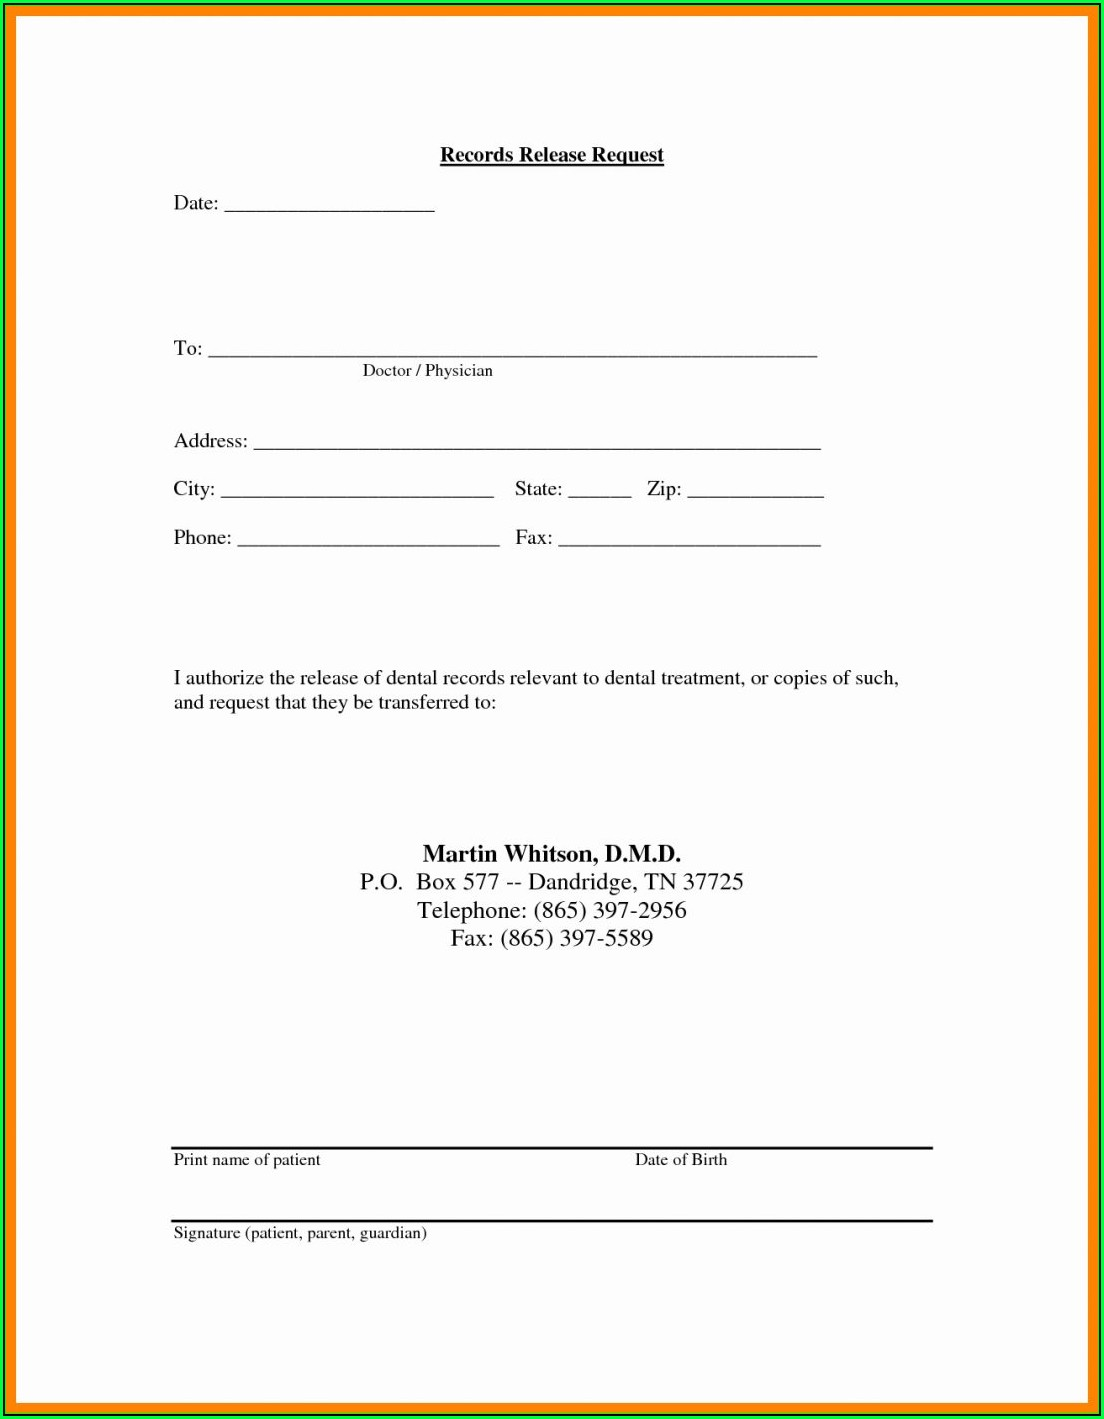 Hipaa Compliant Authorization Form Release Medical Records